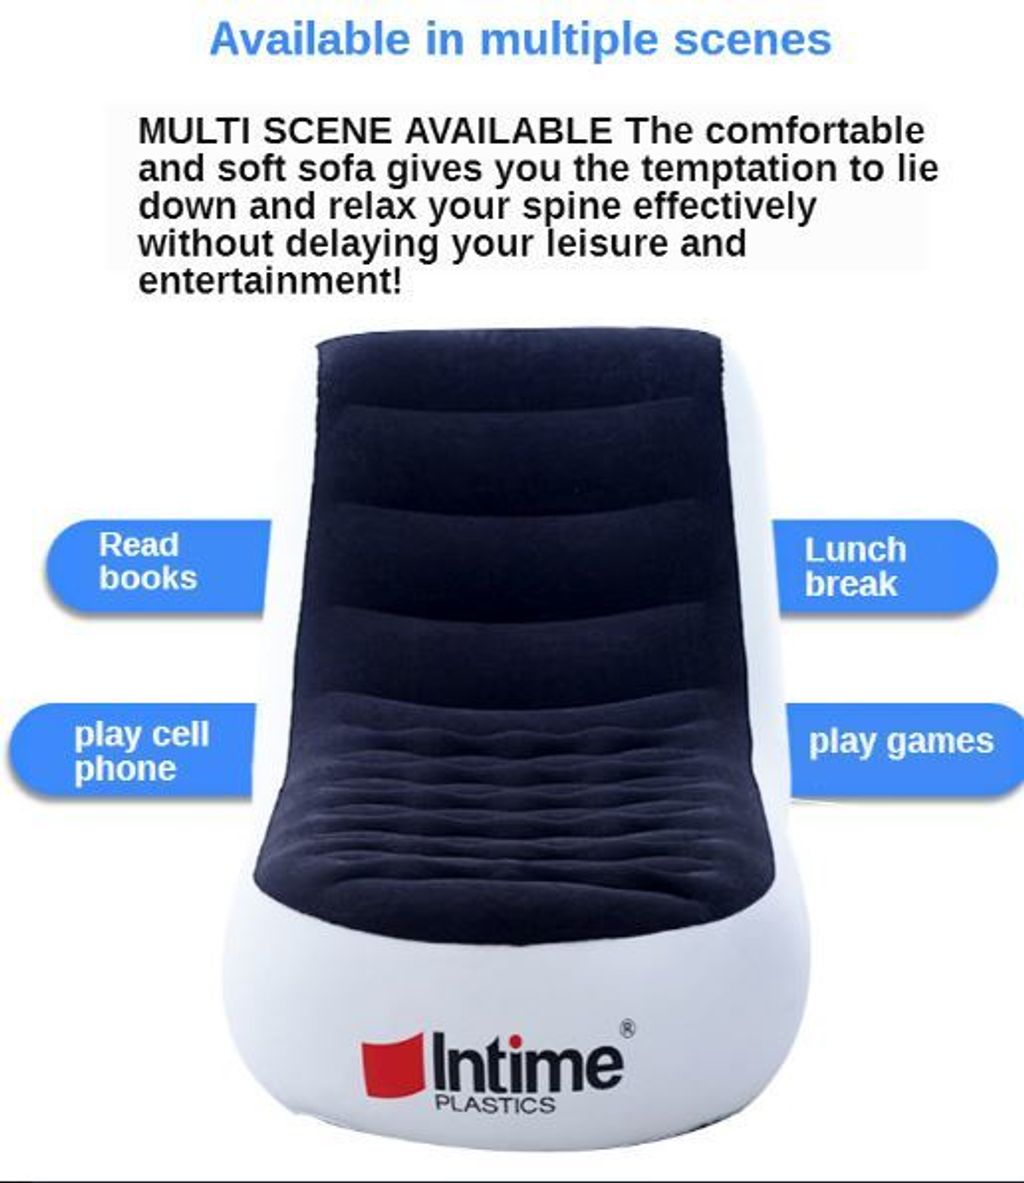 Intime_couch.04.JPG